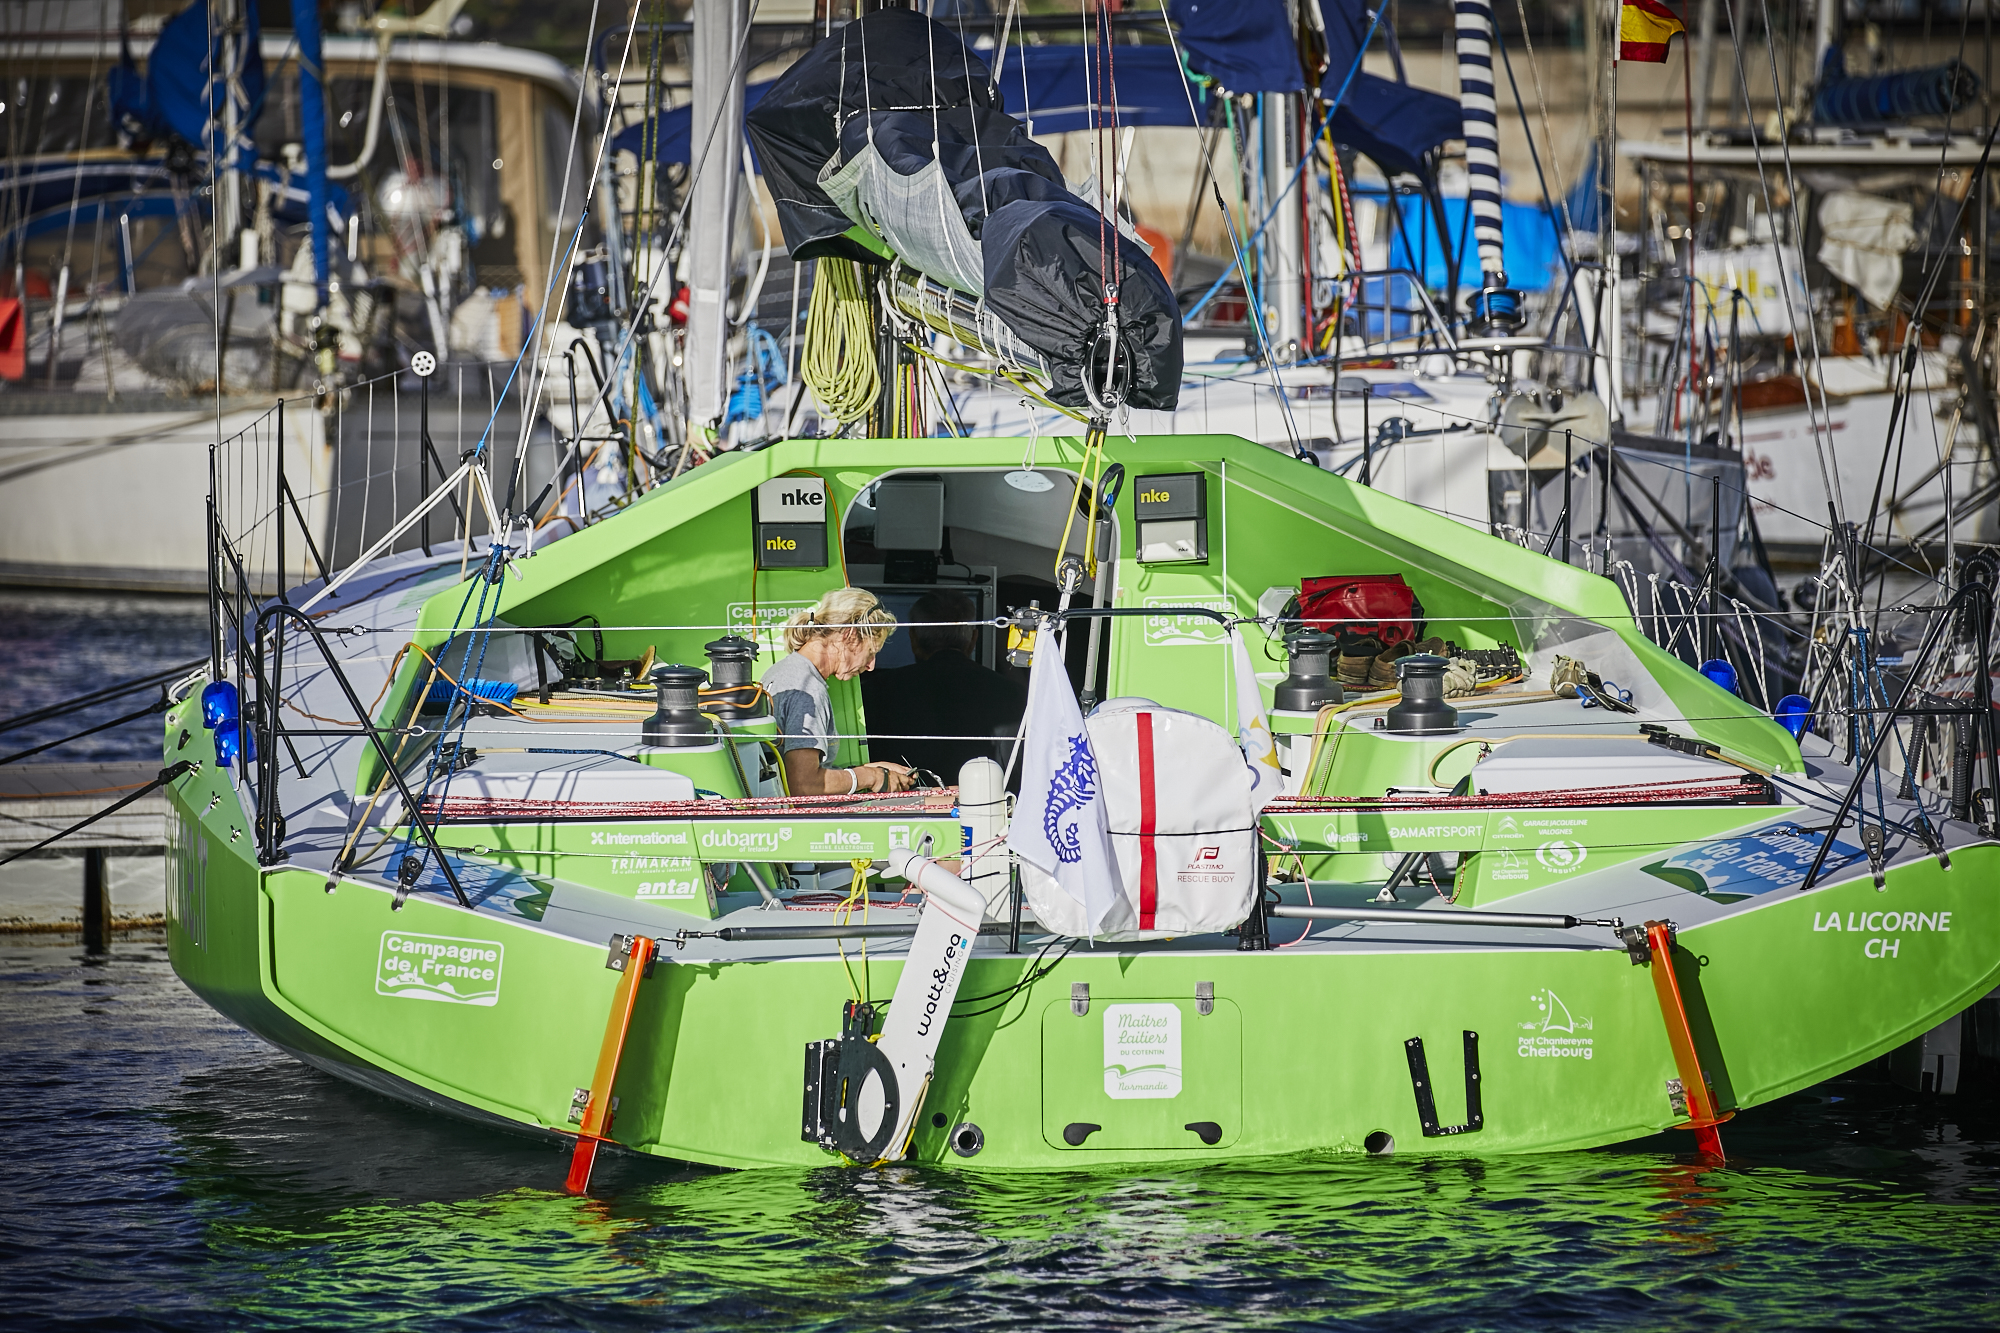 Champagne De France skippered by Miranda Merron - photo RORC/James Mitchell